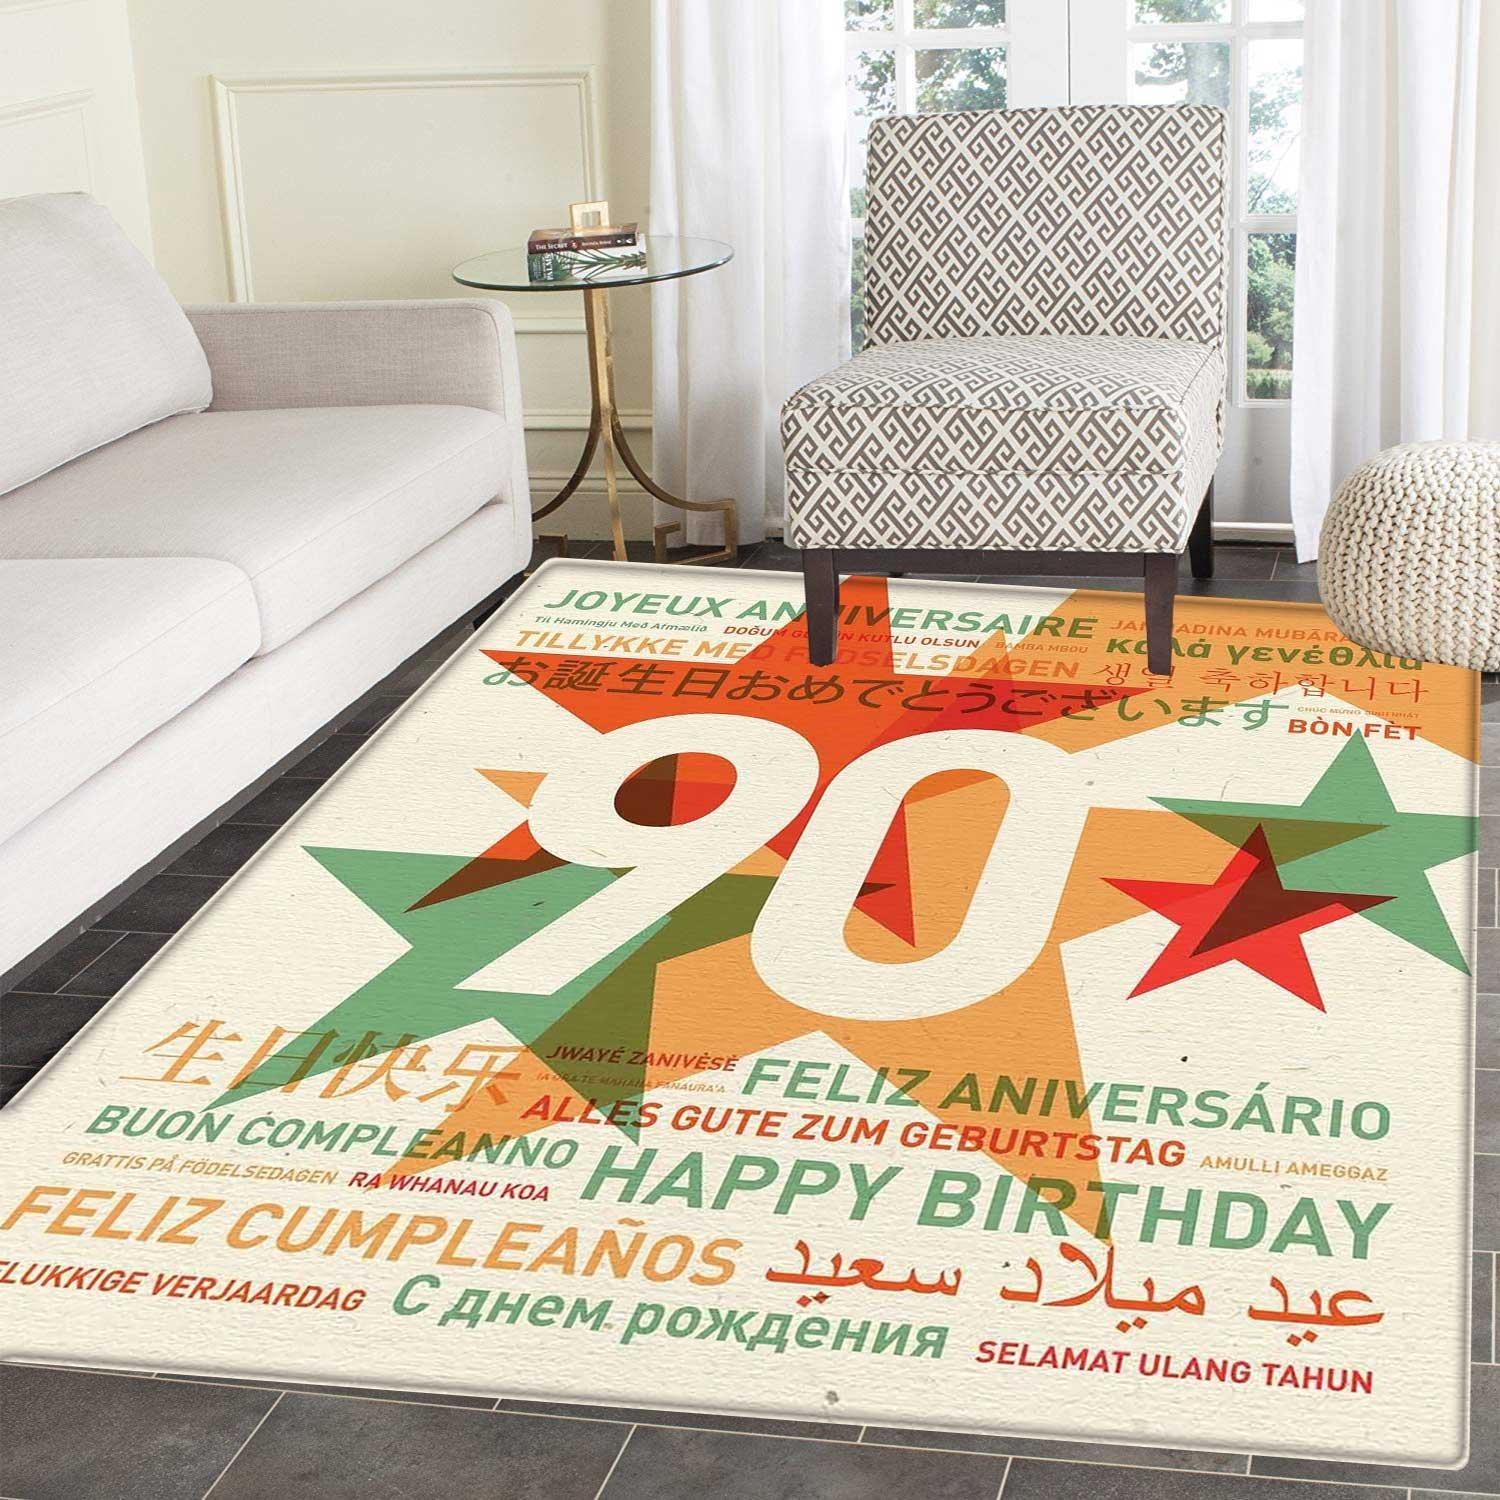 90th Birthday Dining Room Home Bedroom Carpet Floor Mat Old Age  Celebrations from the World Languages and Stars in Vintage Style Non Slip  rug 5 x6  ... a65c0cee5